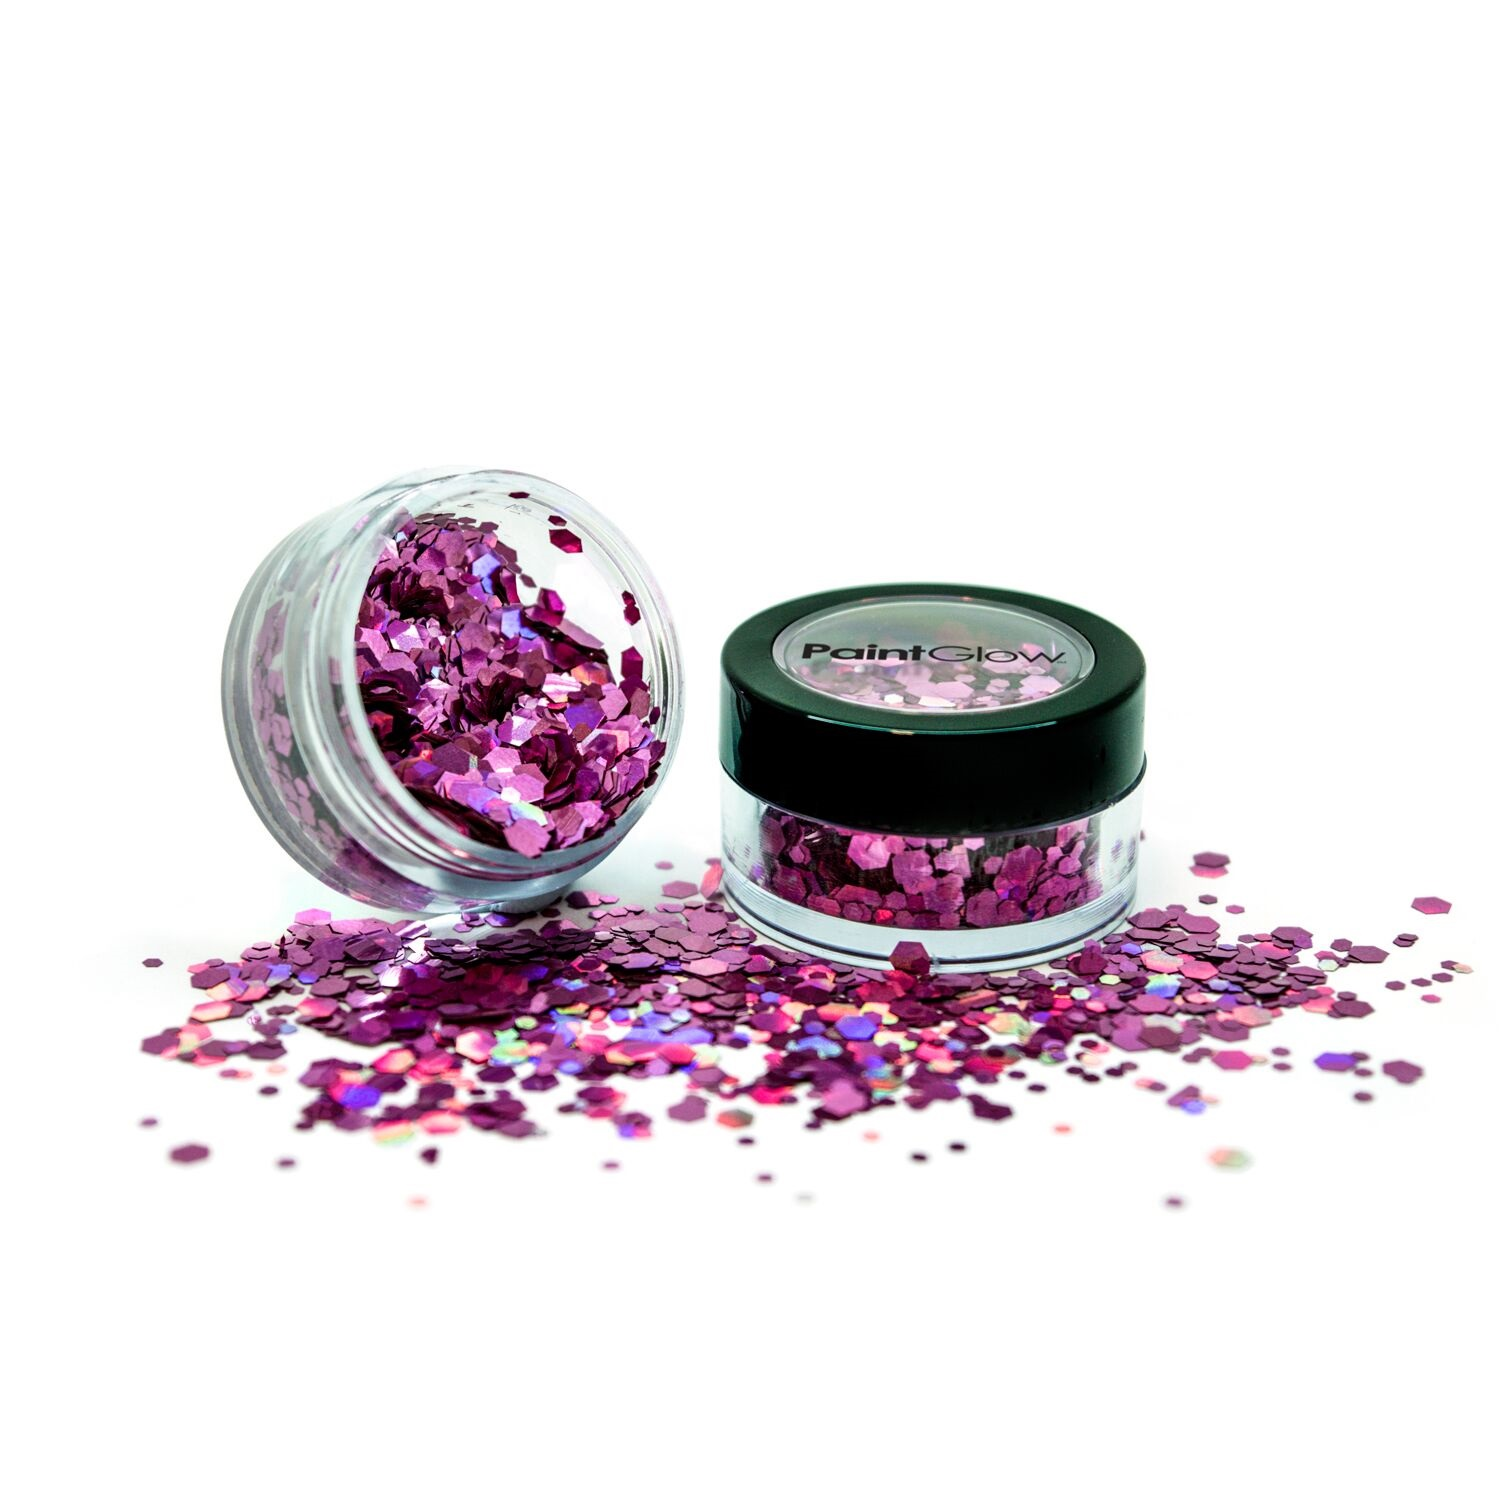 Holografische chunky glitters 3 gram Princess Pink 1